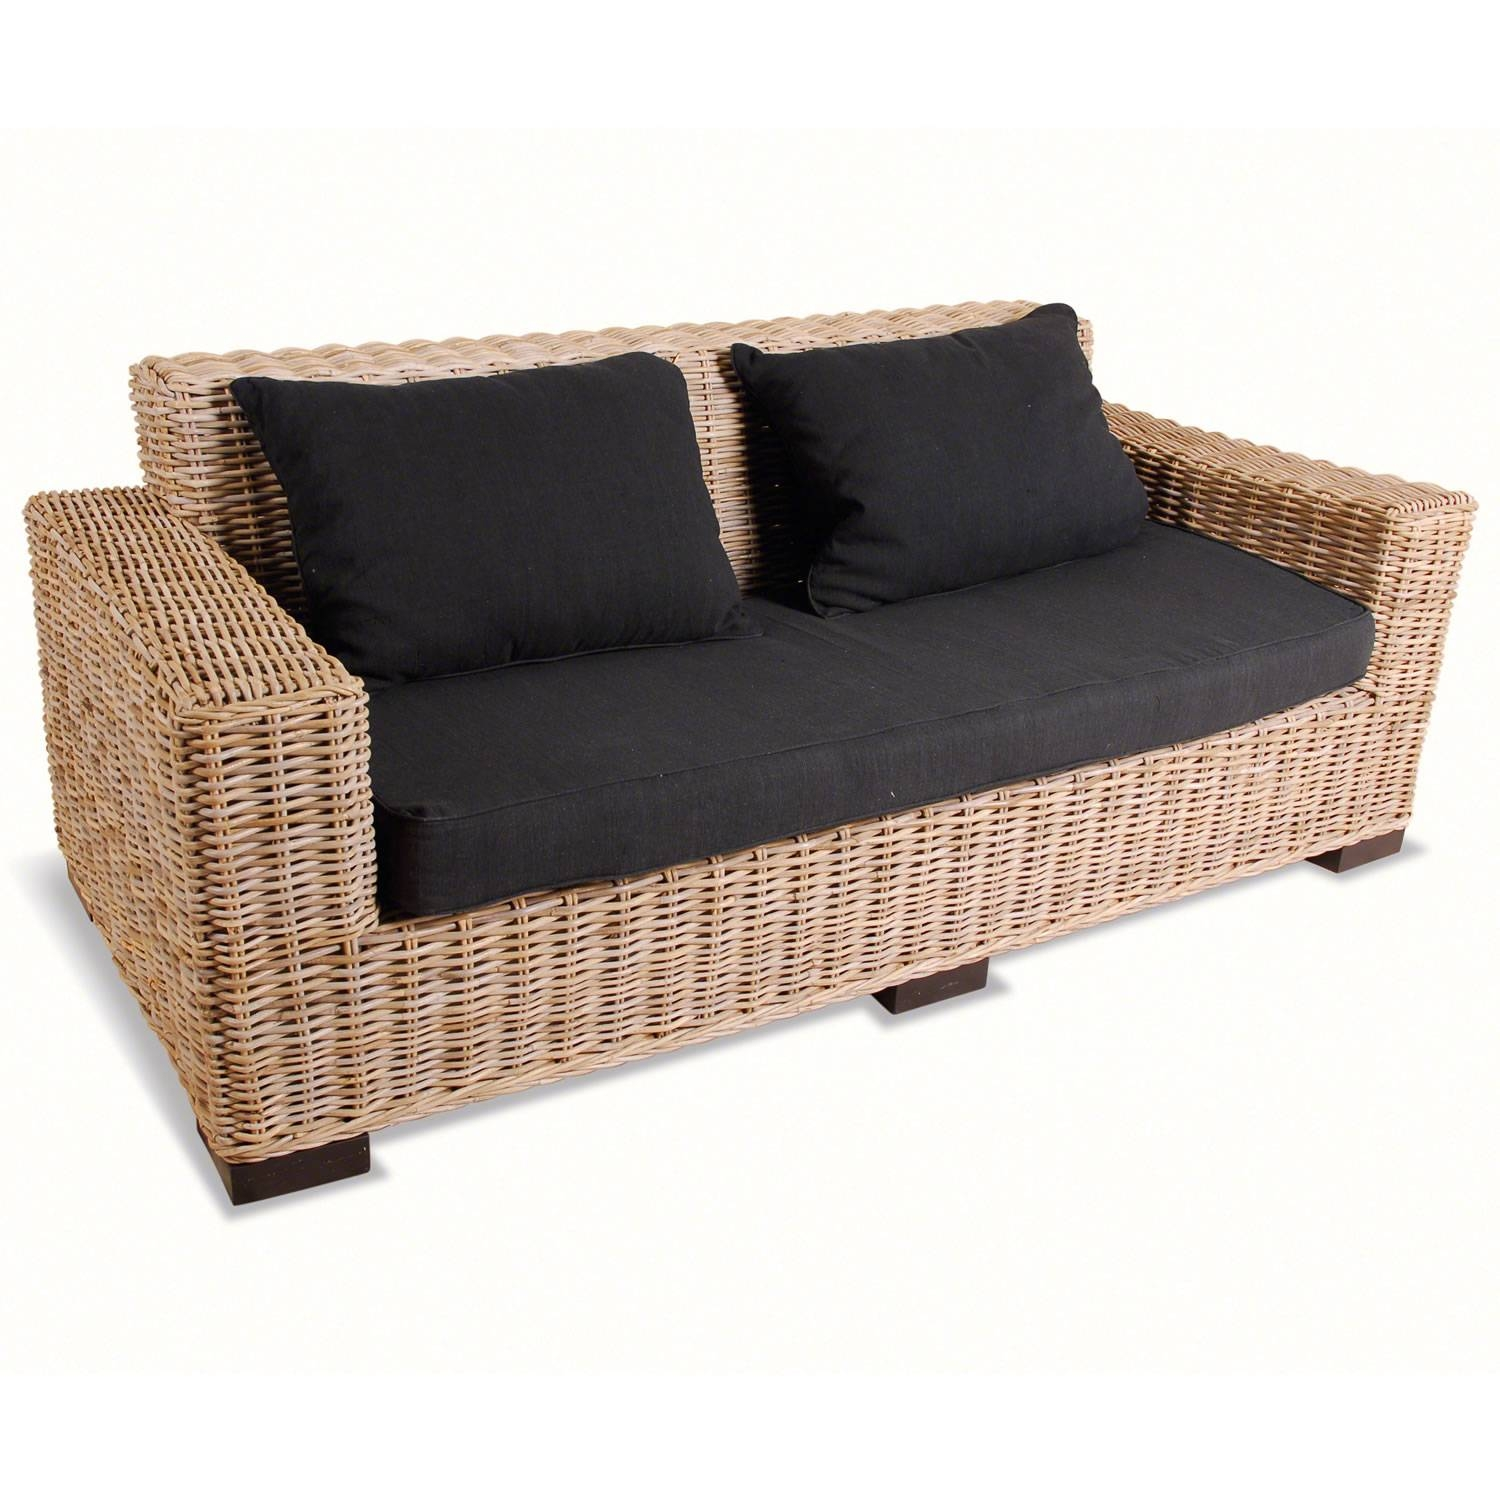 Affordable Modern Rattan Lounge Futuristic Designs ~ Aprar throughout Modern Rattan Sofas (Image 1 of 30)